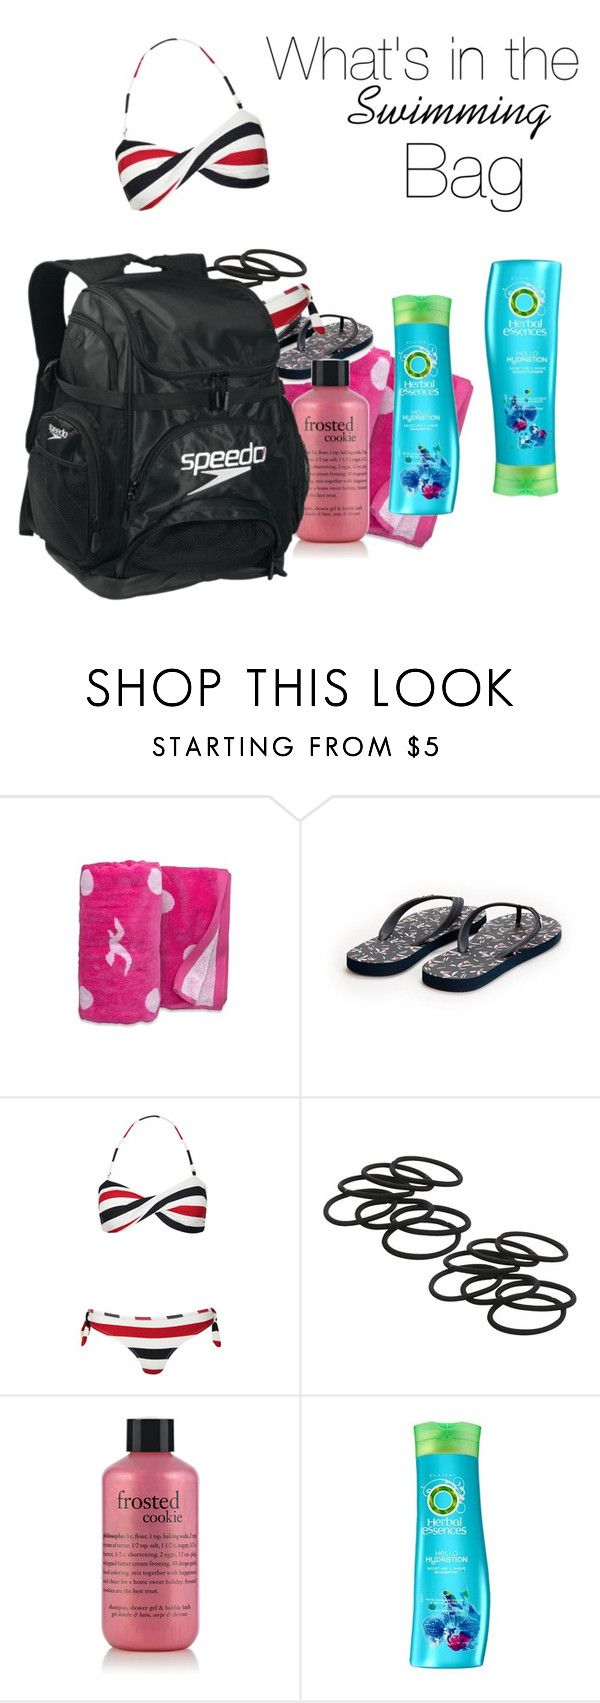 """""""What's in the Bag?"""" by deeda-ferreira ❤ liked on Polyvore featuring Hollister Co., Jack Wills, philosophy, Speedo, Herbal Essences, Whatsinthebag and Swimmingbag"""